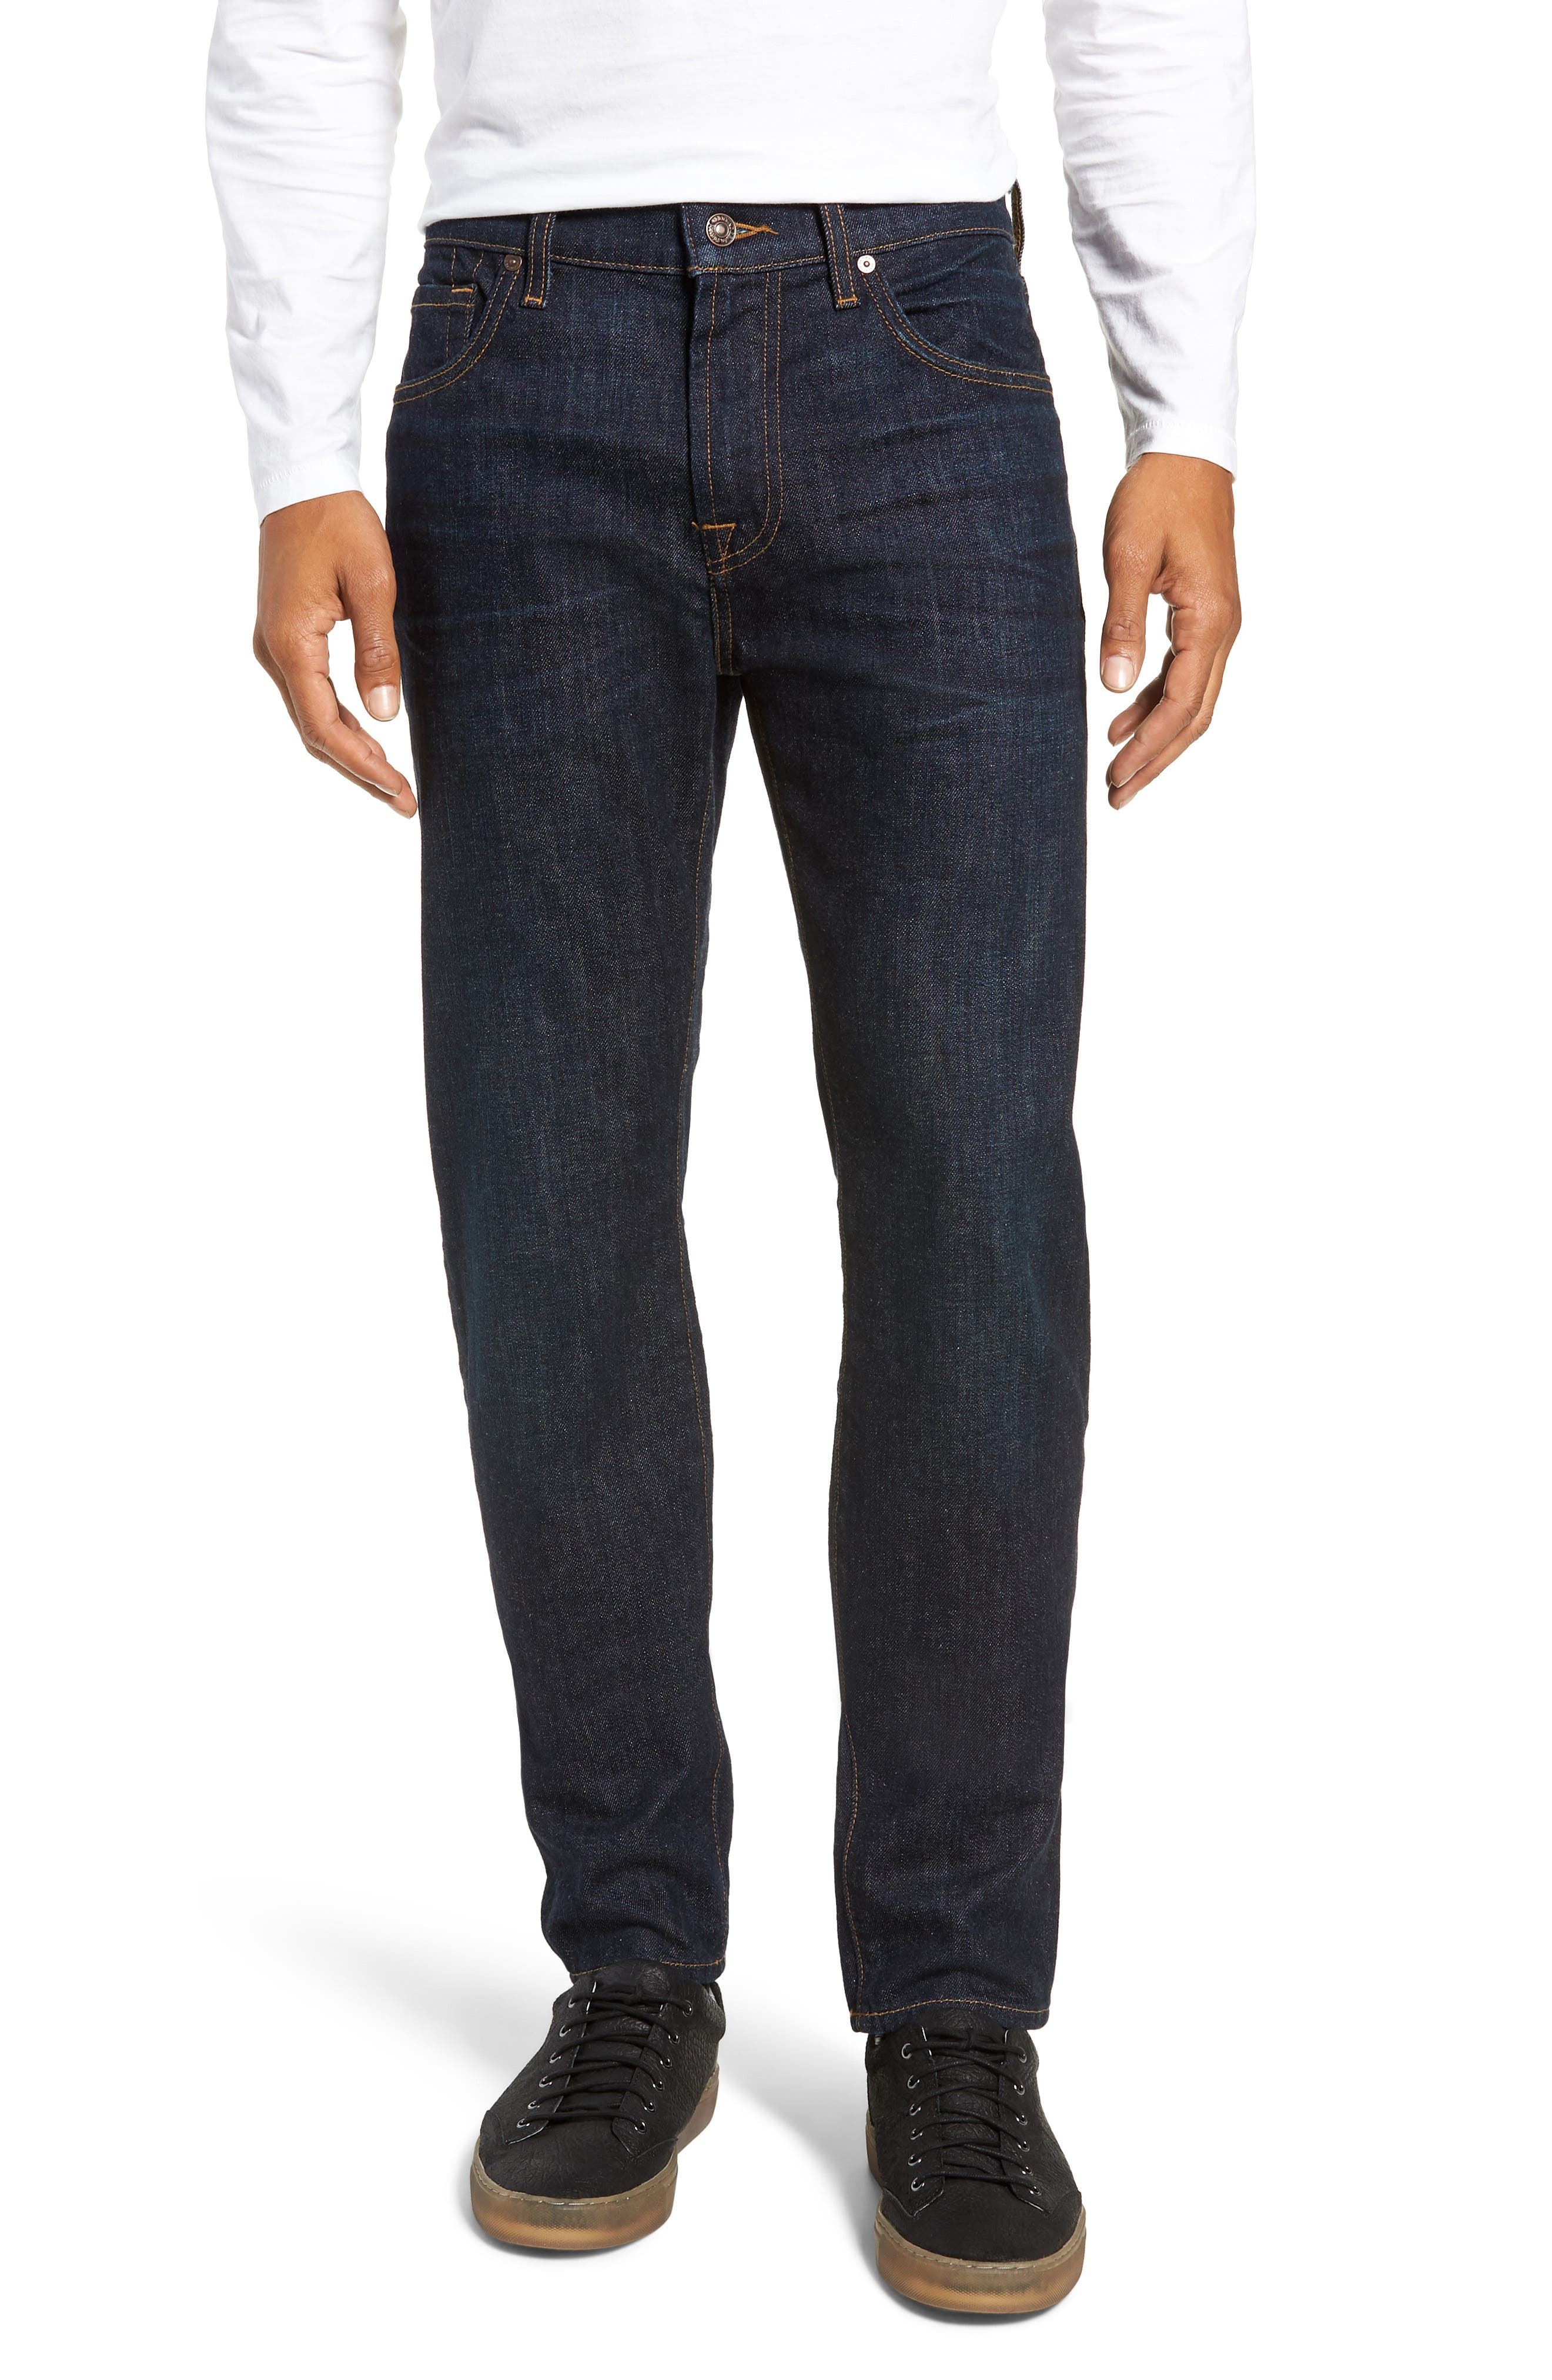 Ryley Skinny Fit Jeans,                             Main thumbnail 1, color,                             400